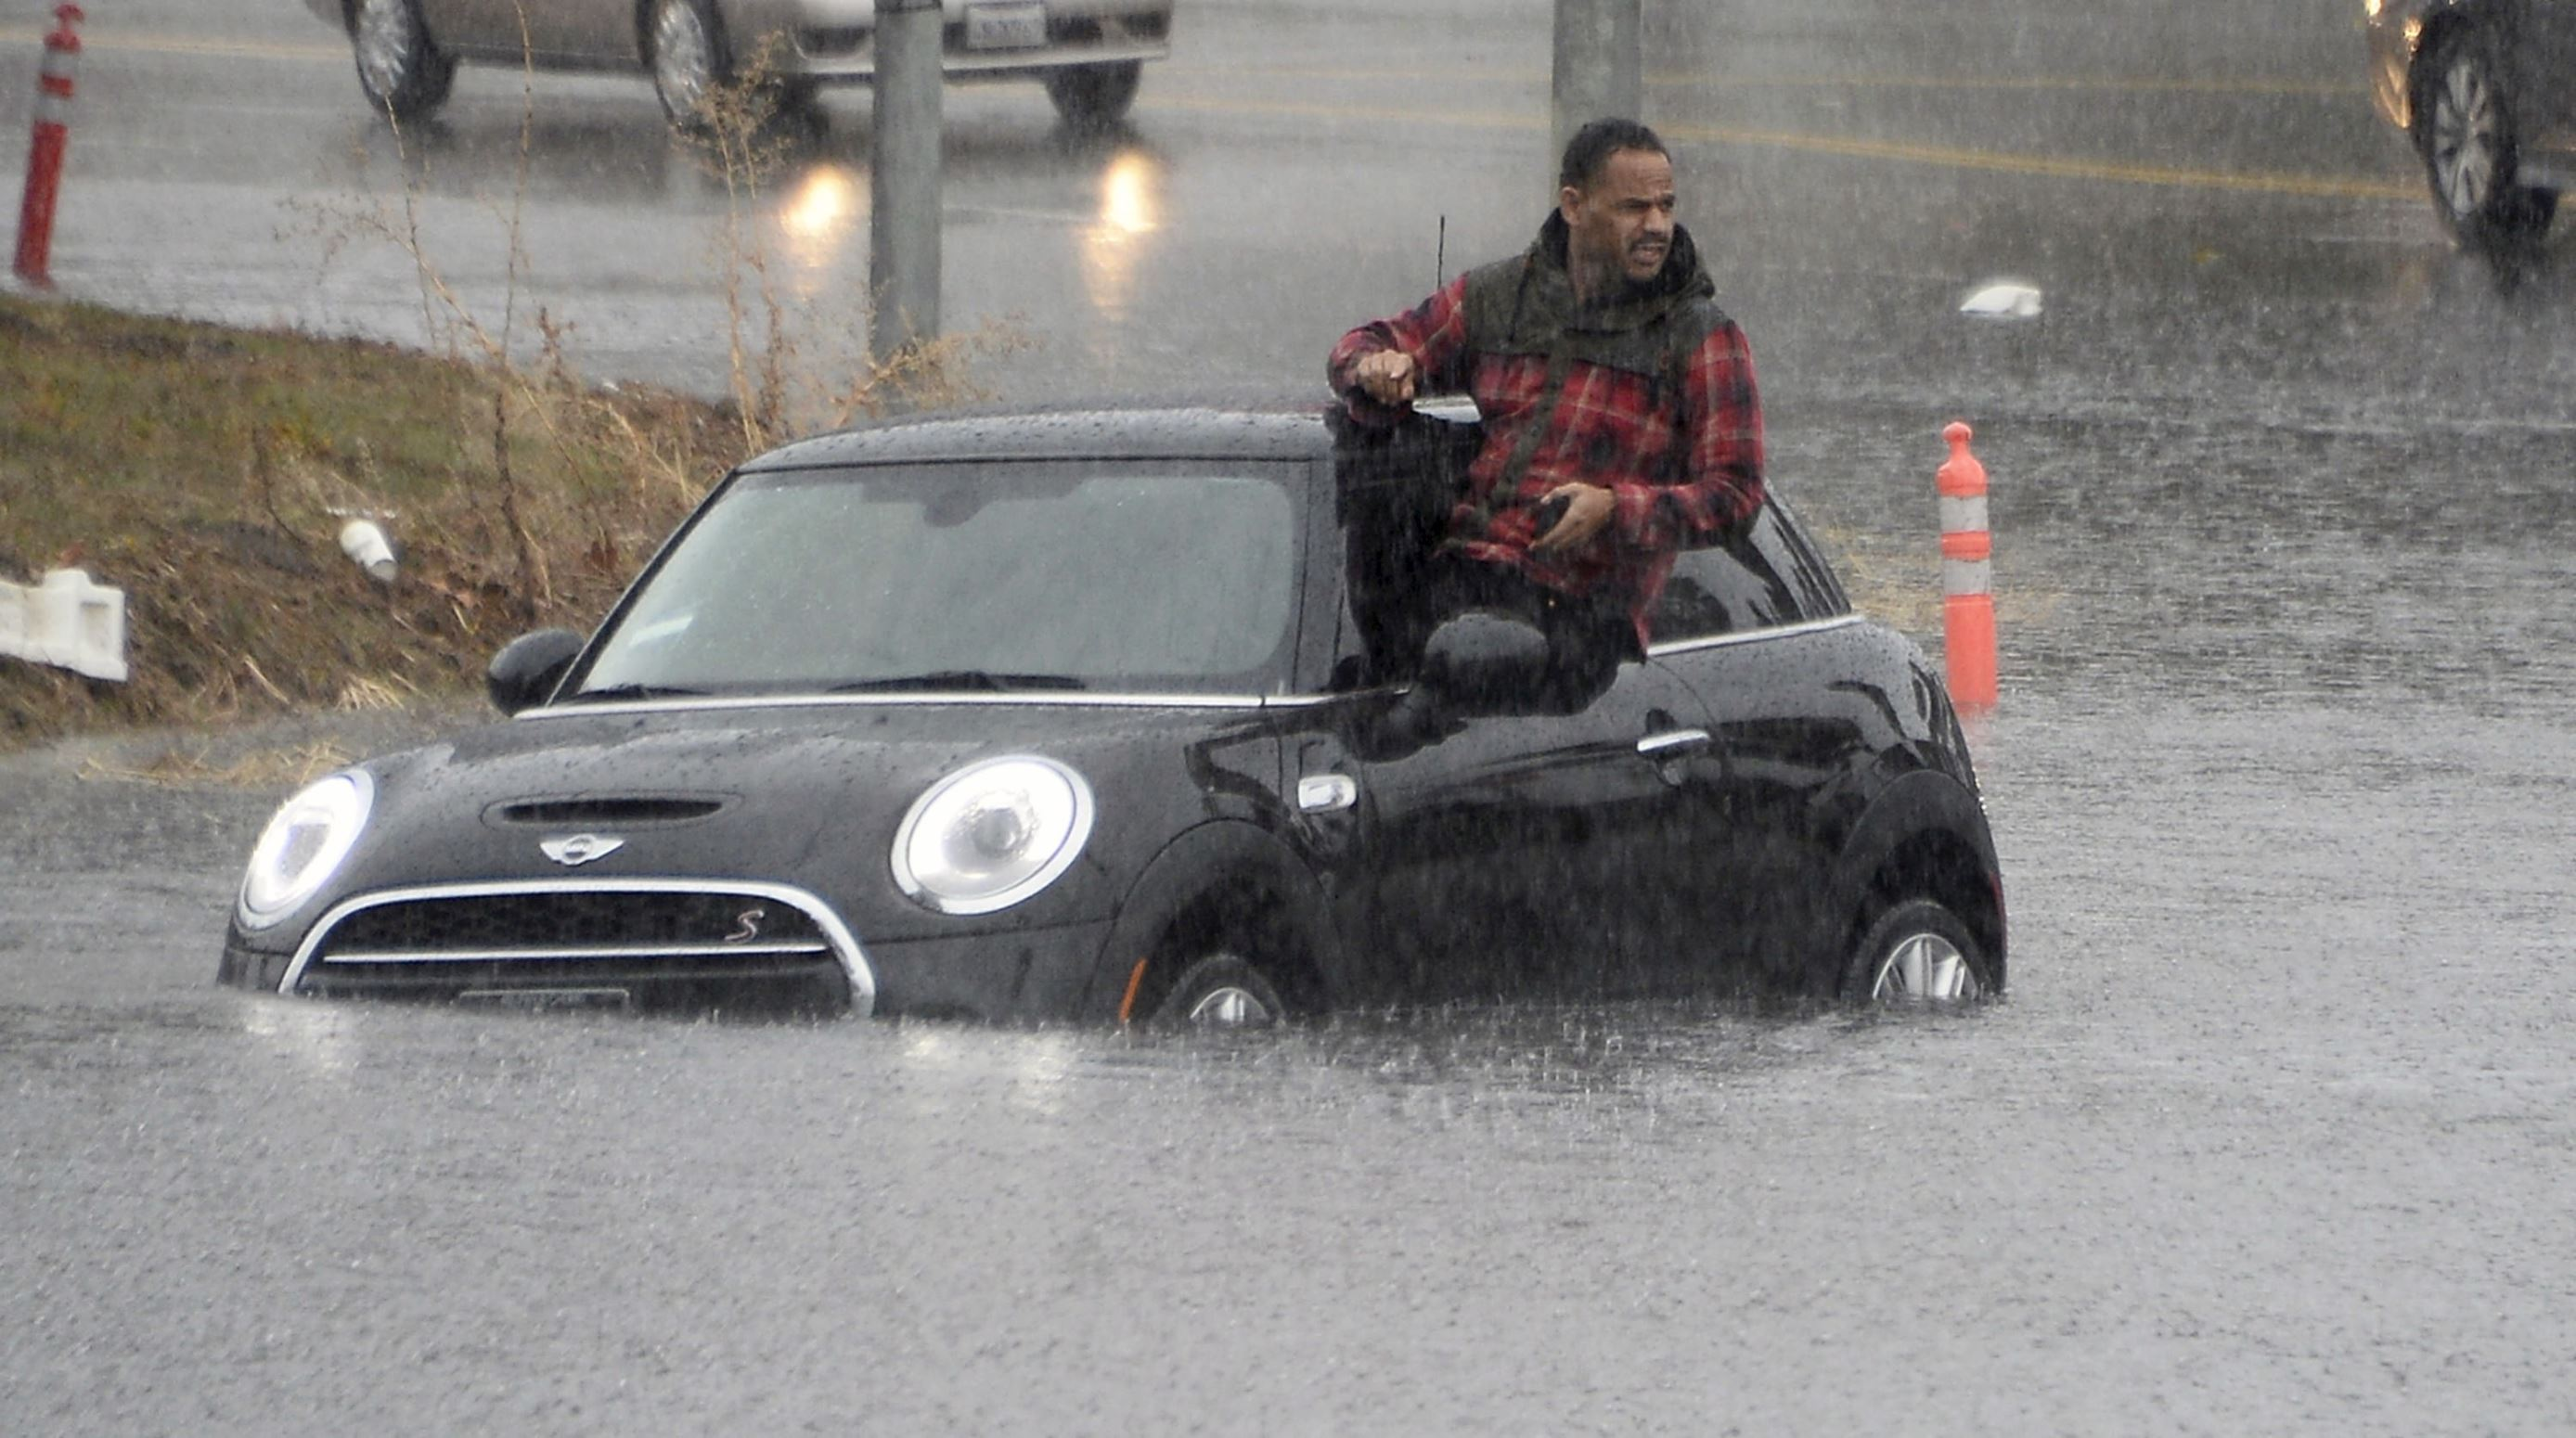 Слайд 4 из 86: A driver climbs out of a window of his car after driving onto a flooded road in Van Nuys, California January 5, 2016. An El Nino-strengthened storm brought widespread rain to drought-stricken California on Tuesday, triggering flooding that clogged roadways, and authorities warned residents about possible mud slides. REUTERS/Gene Blevins TPX IMAGES OF THE DAY ...